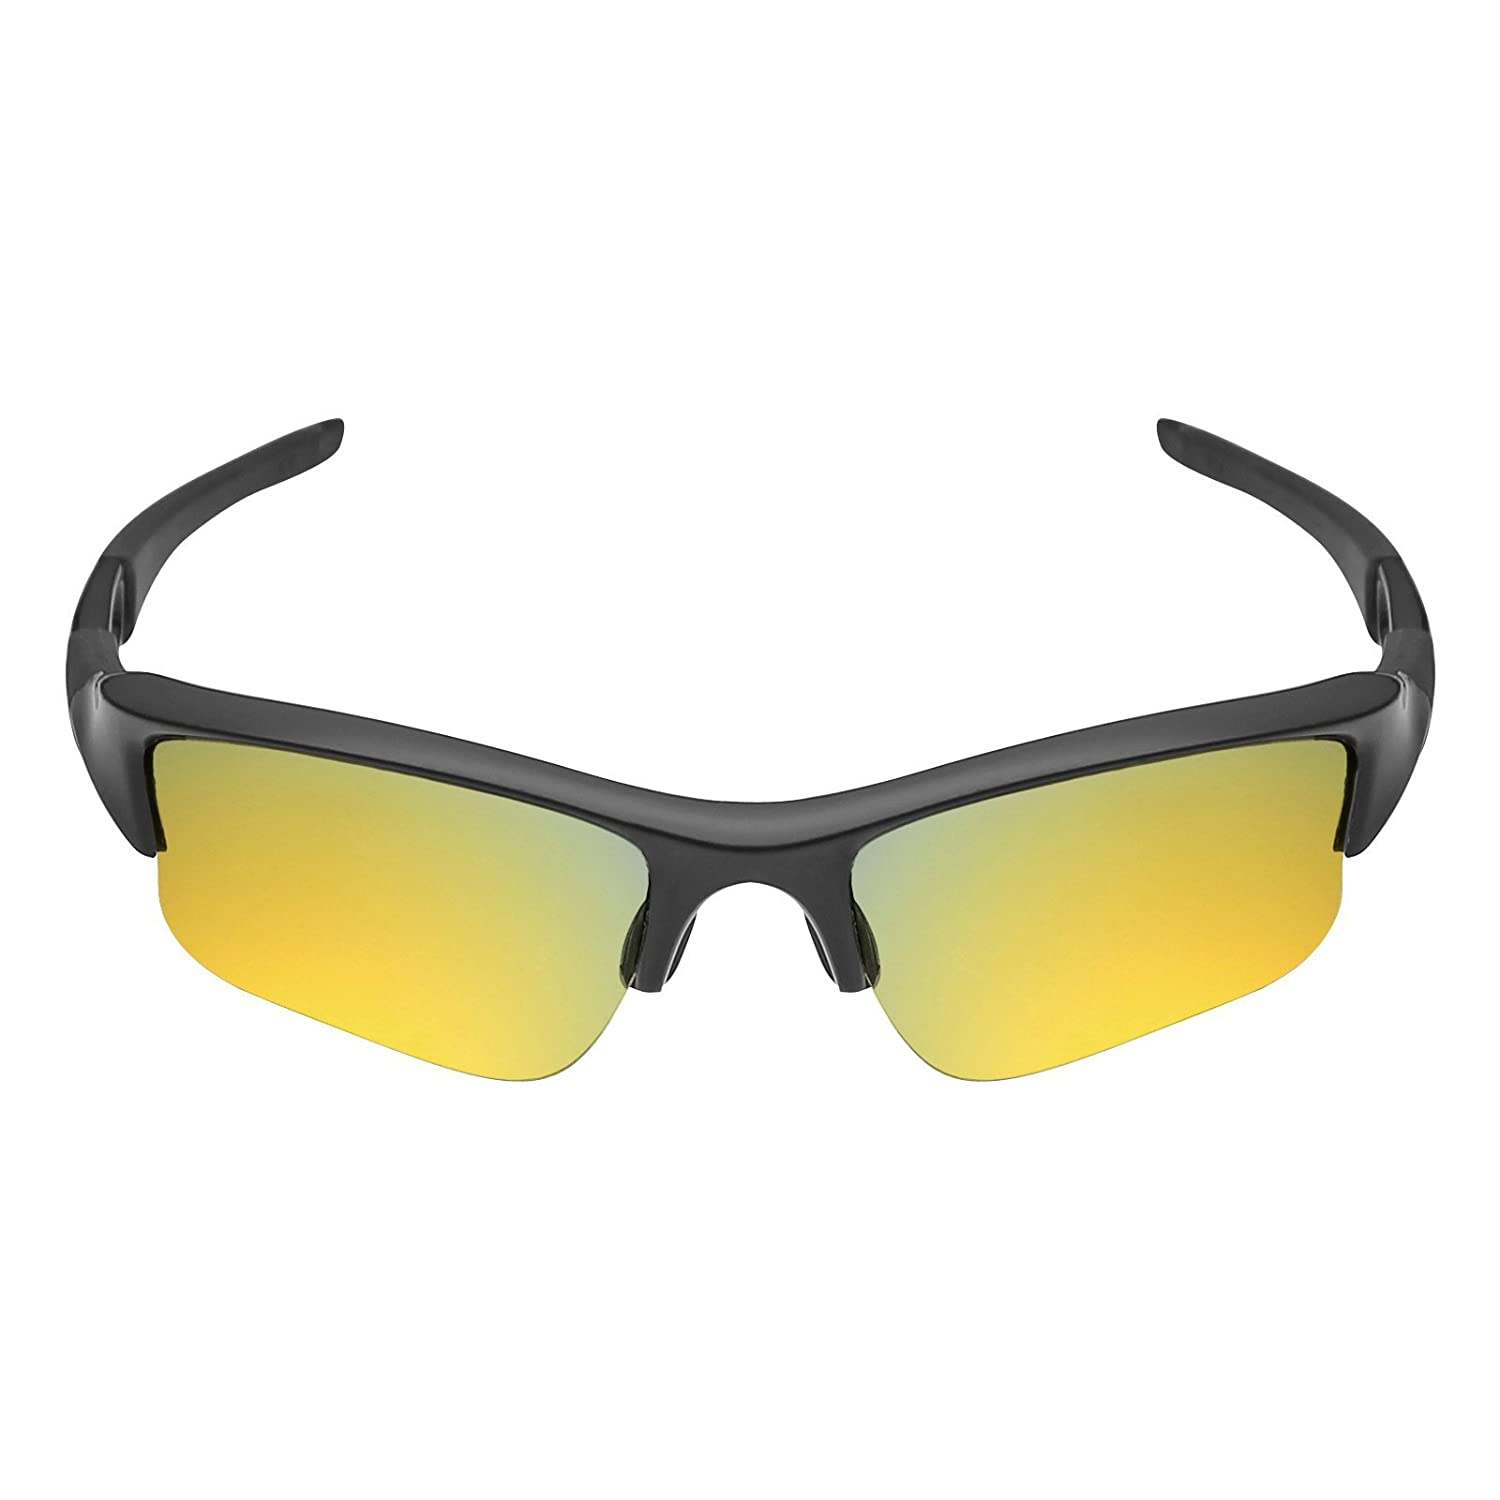 567aa1f8b0fa5 Mryok Replacement Lenses for Oakley Flak Jacket XLJ Sunglasses - Rich  Options  Amazon.ca  Clothing   Accessories